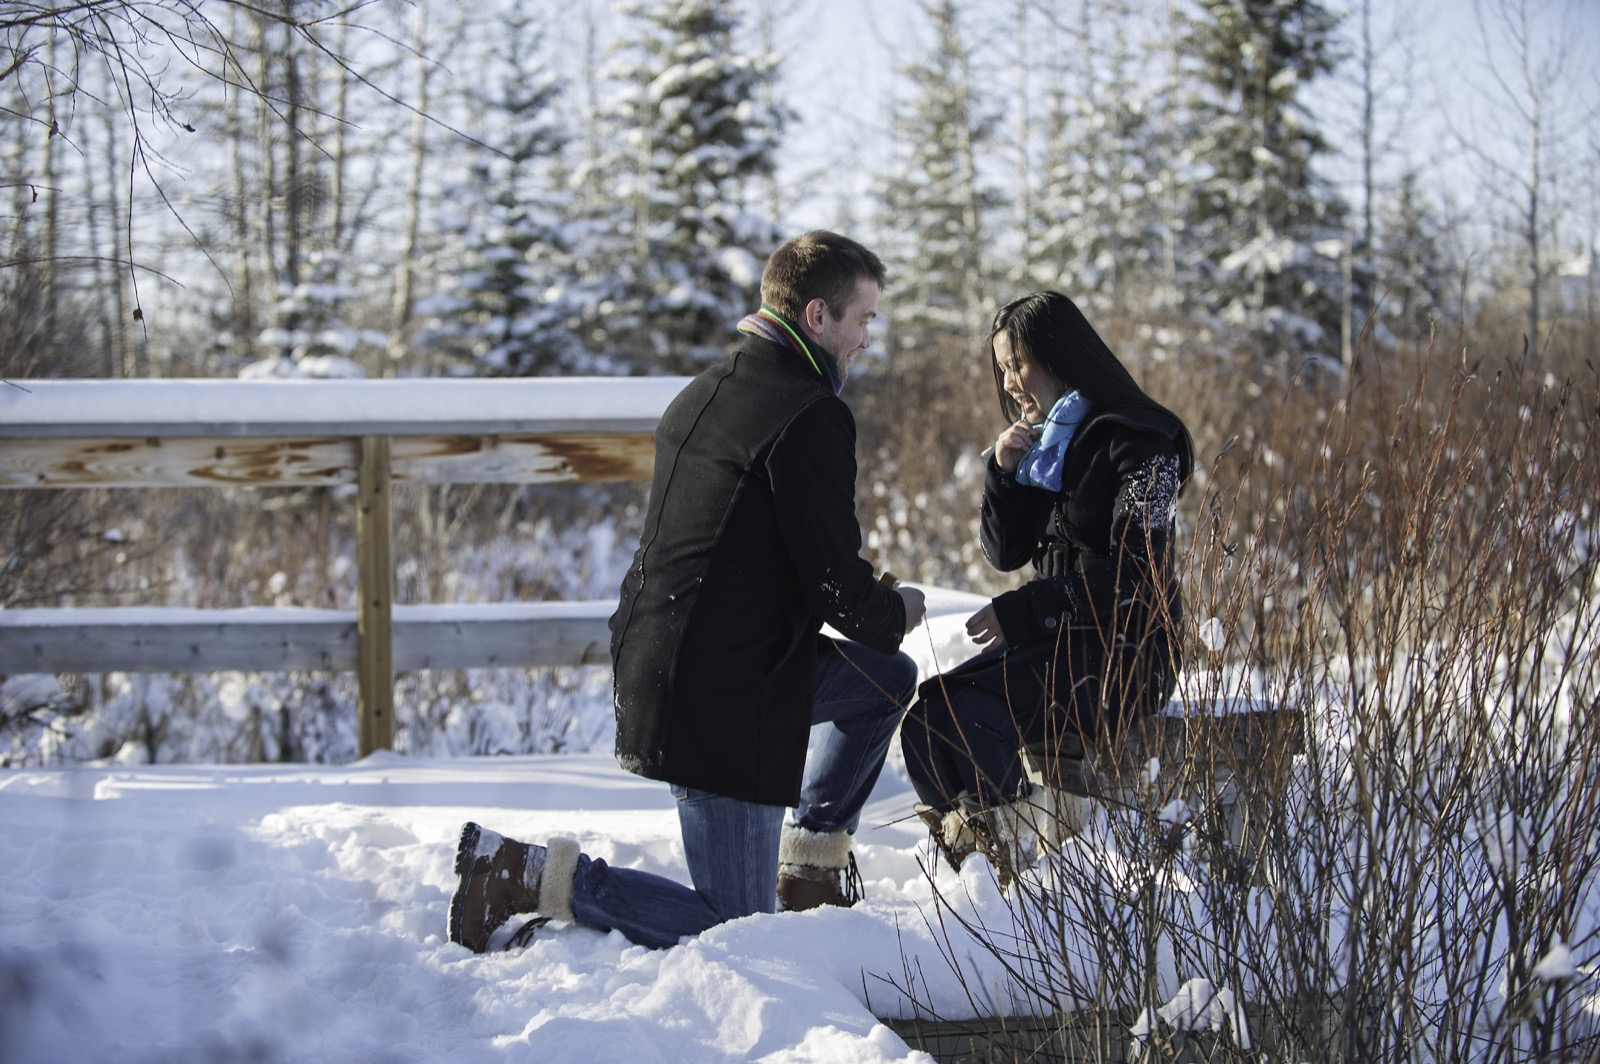 victoria-wedding-photographers-calgary-winter-engagement-proposal-15.jpg